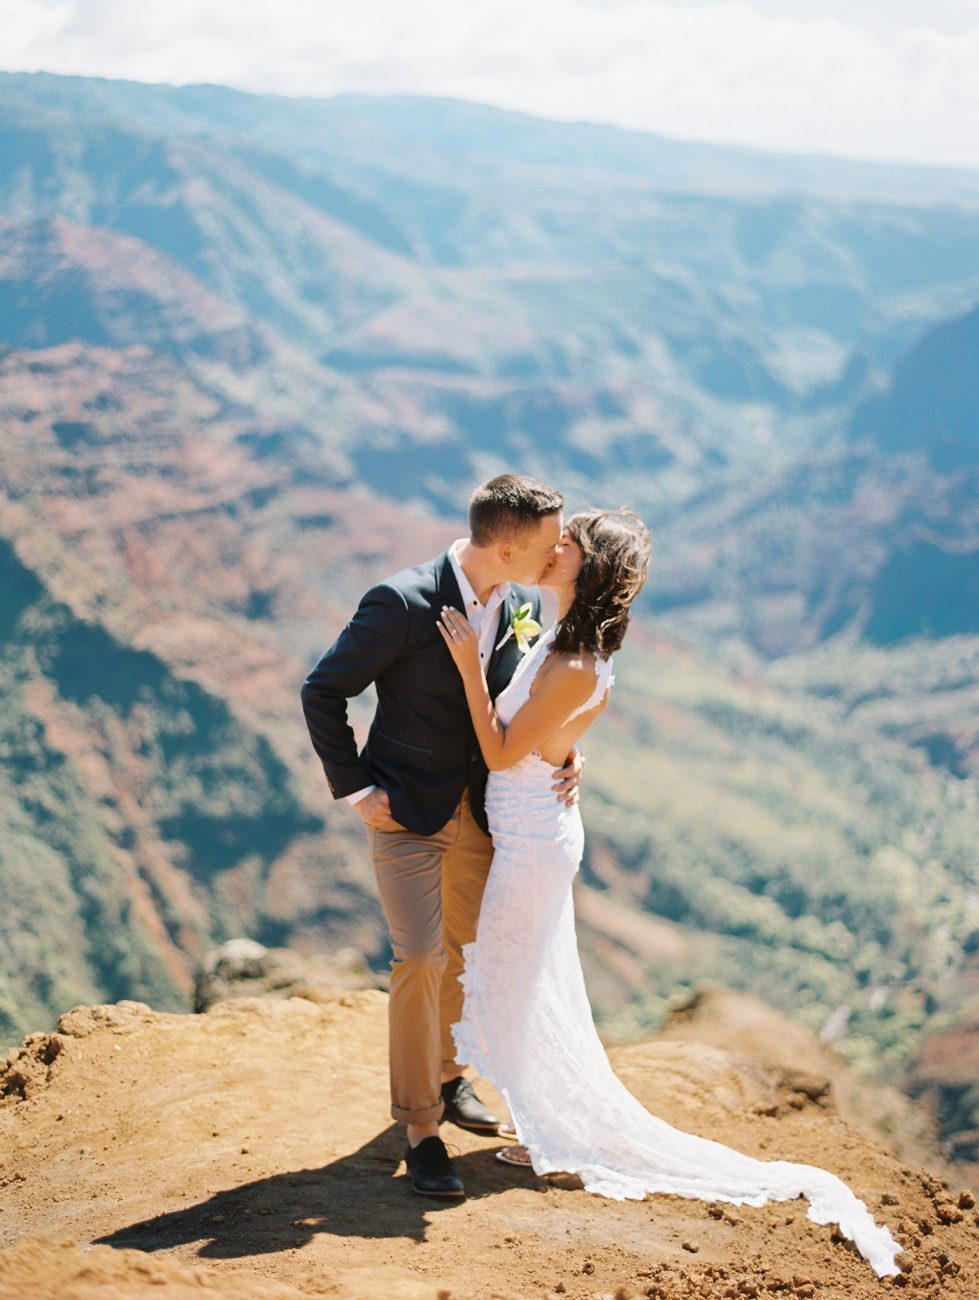 Elopement photography in Kauai by Marina Koslow